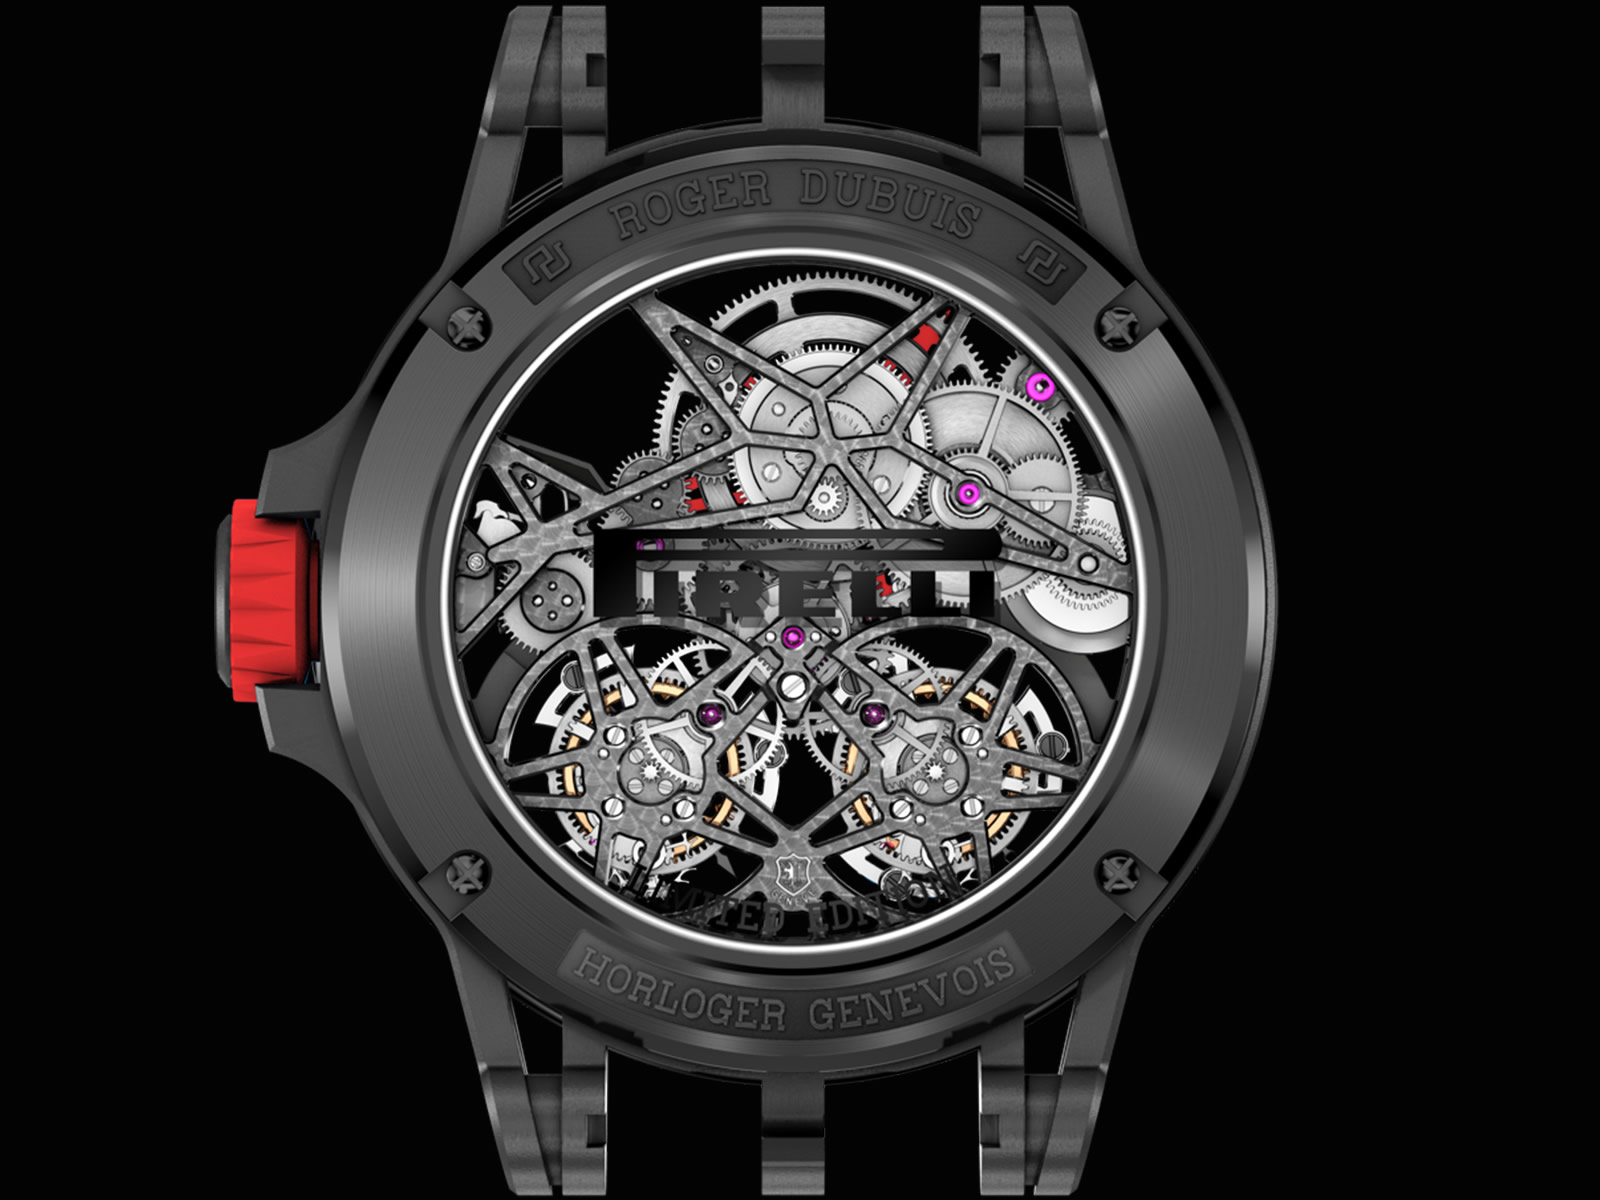 rddbex0657-roger-dubuis-excalibur-spider-pirelli-double-flying-tourbillon-5-.jpg